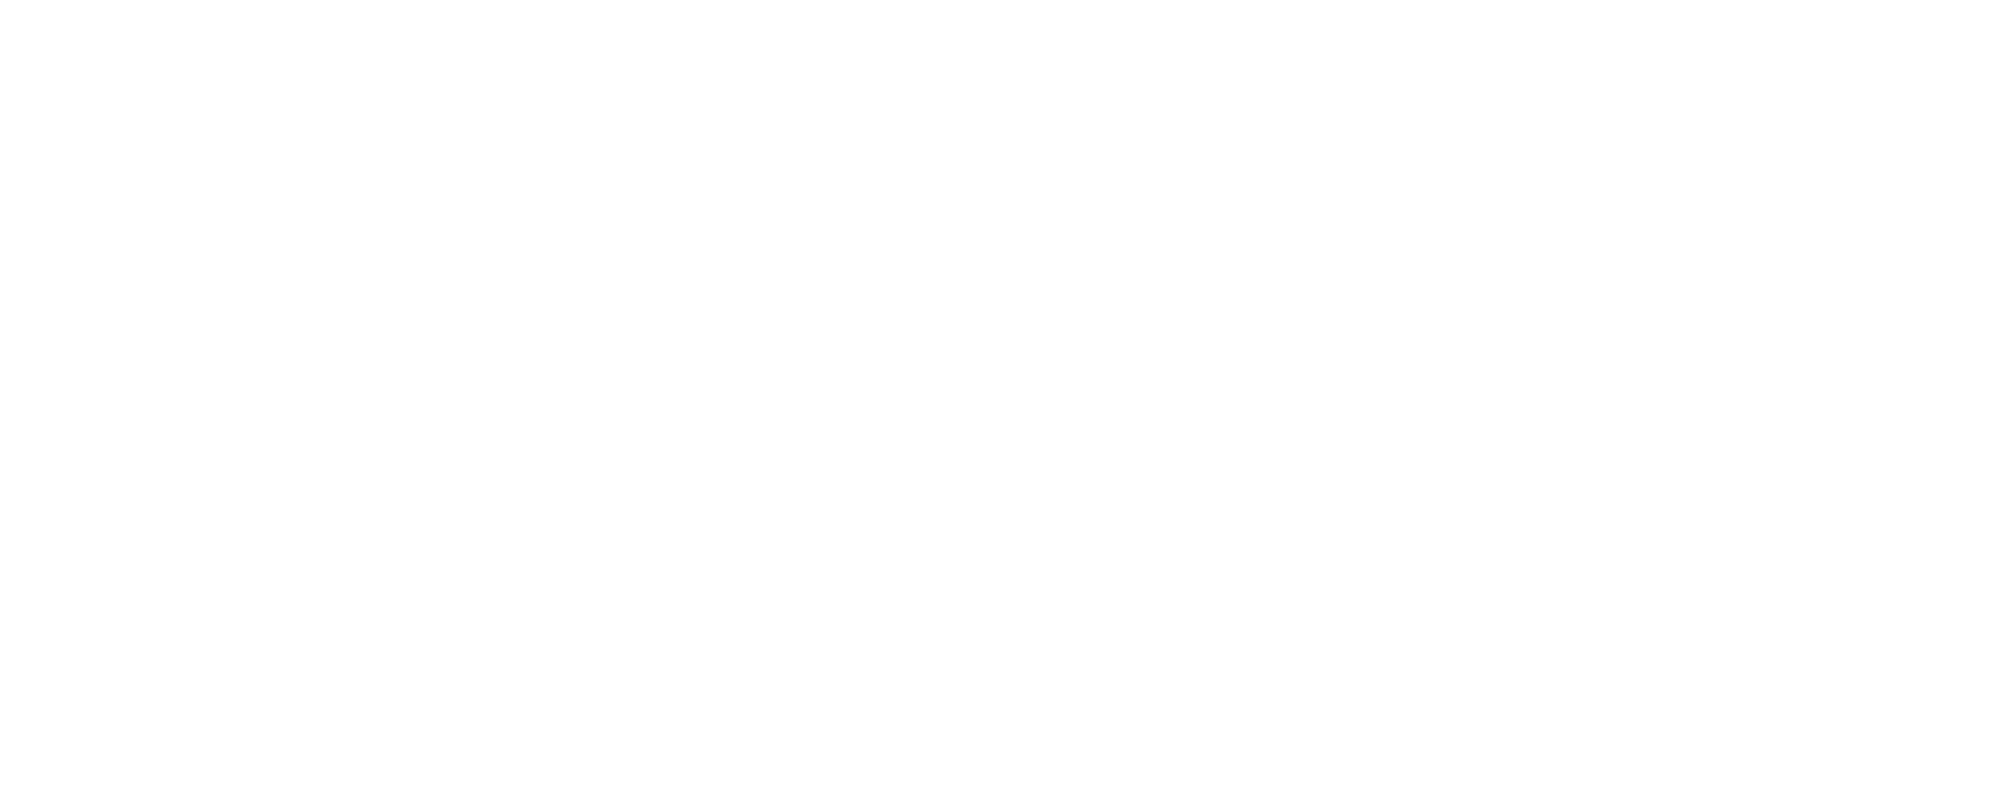 Get Featured on AwesomeStuff365